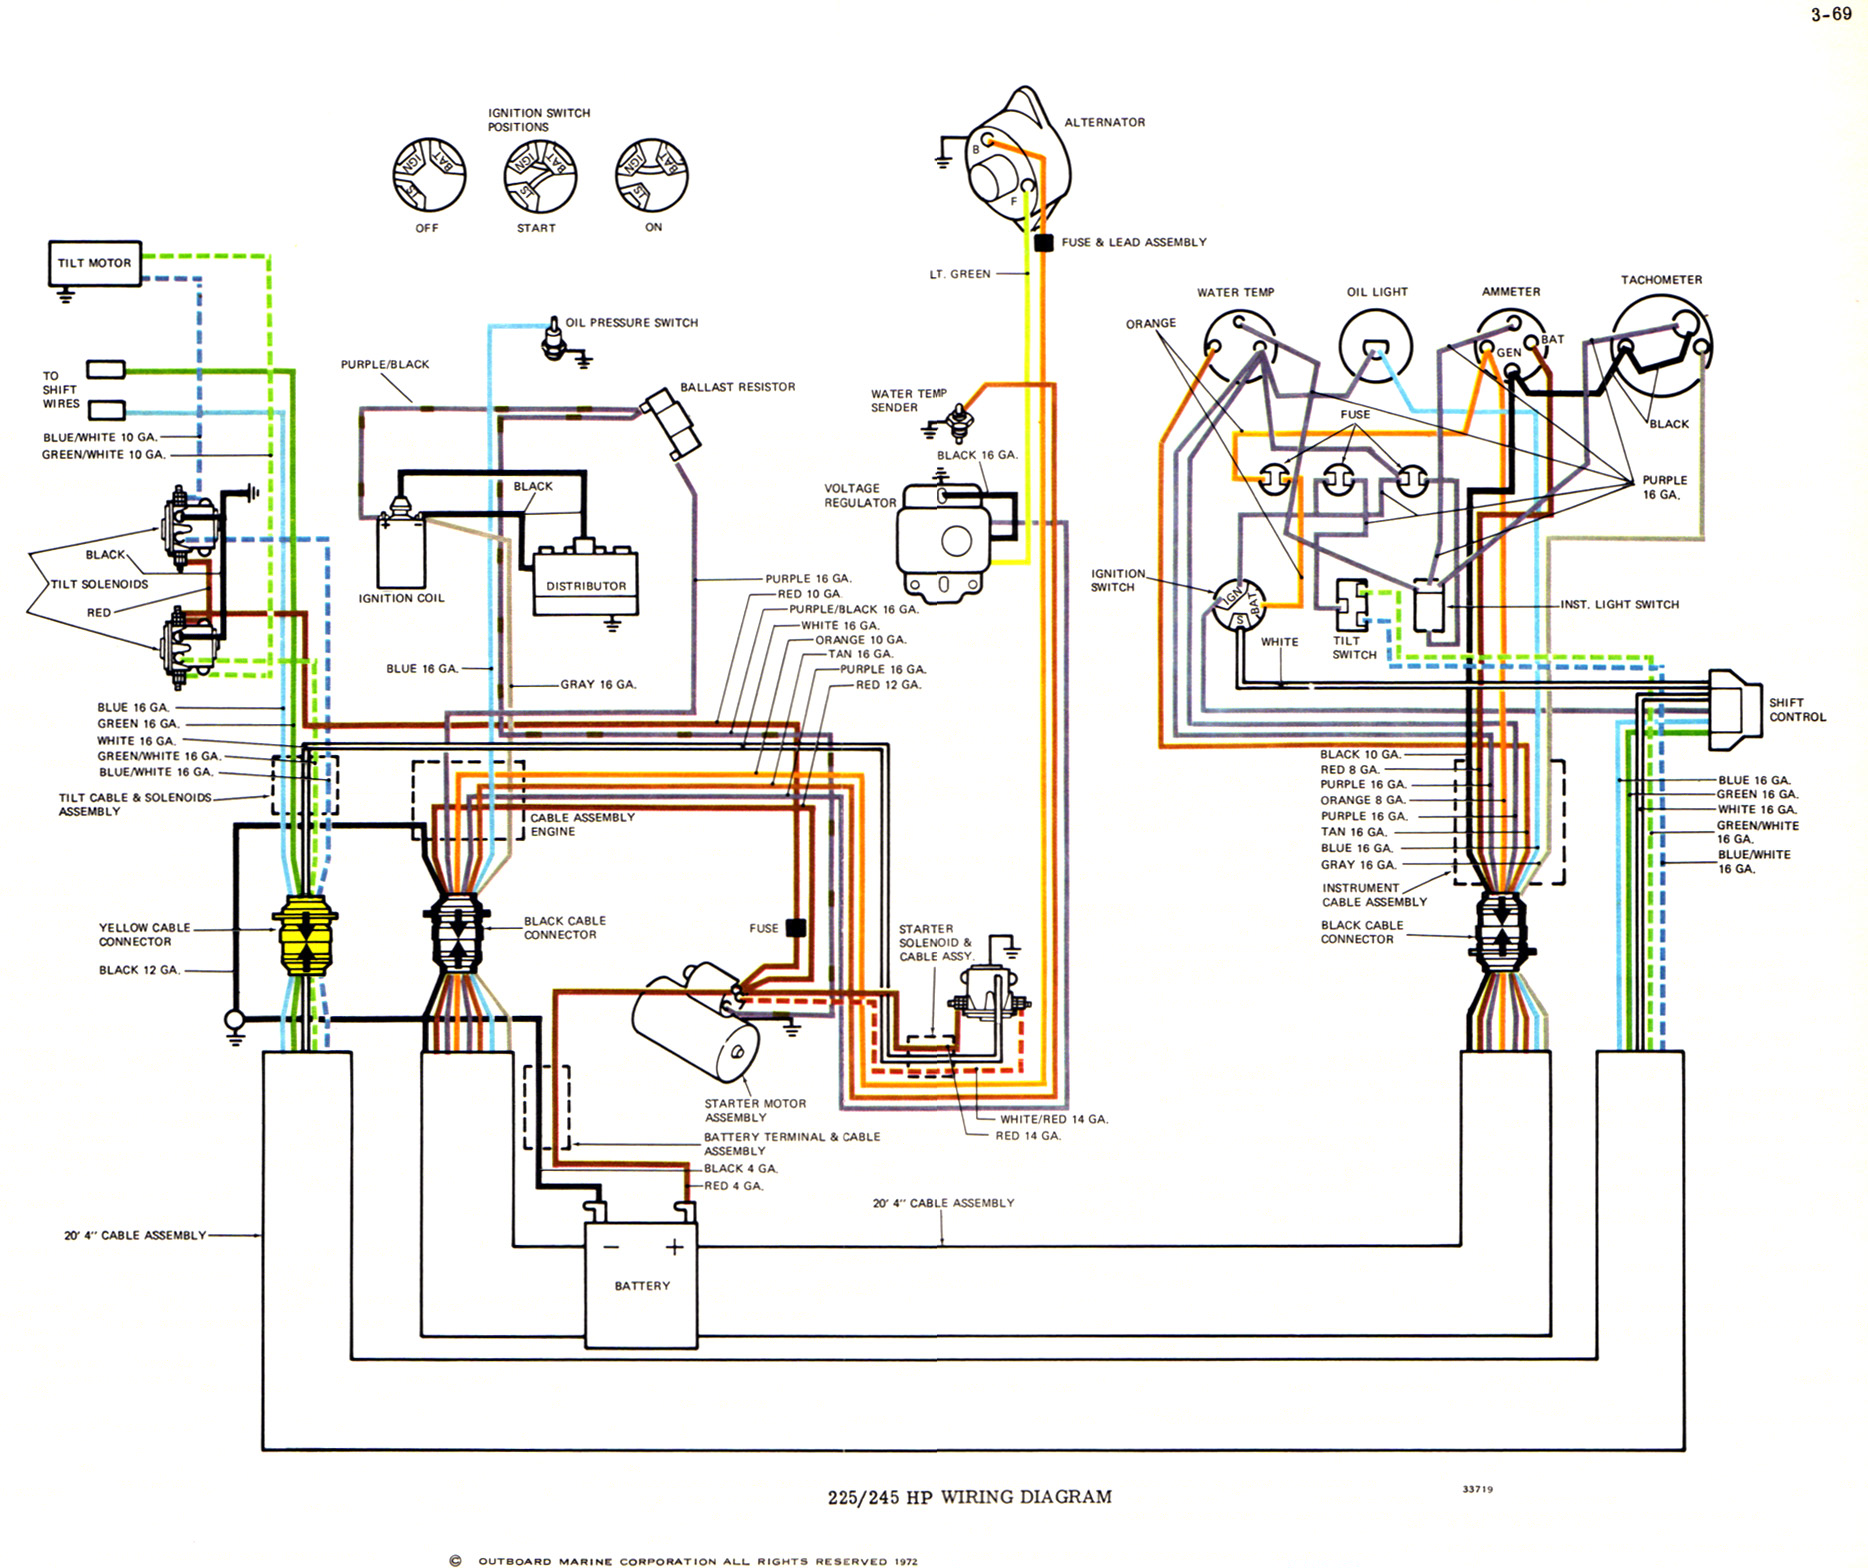 Boat Trim Wiring Diagram from i3.wp.com